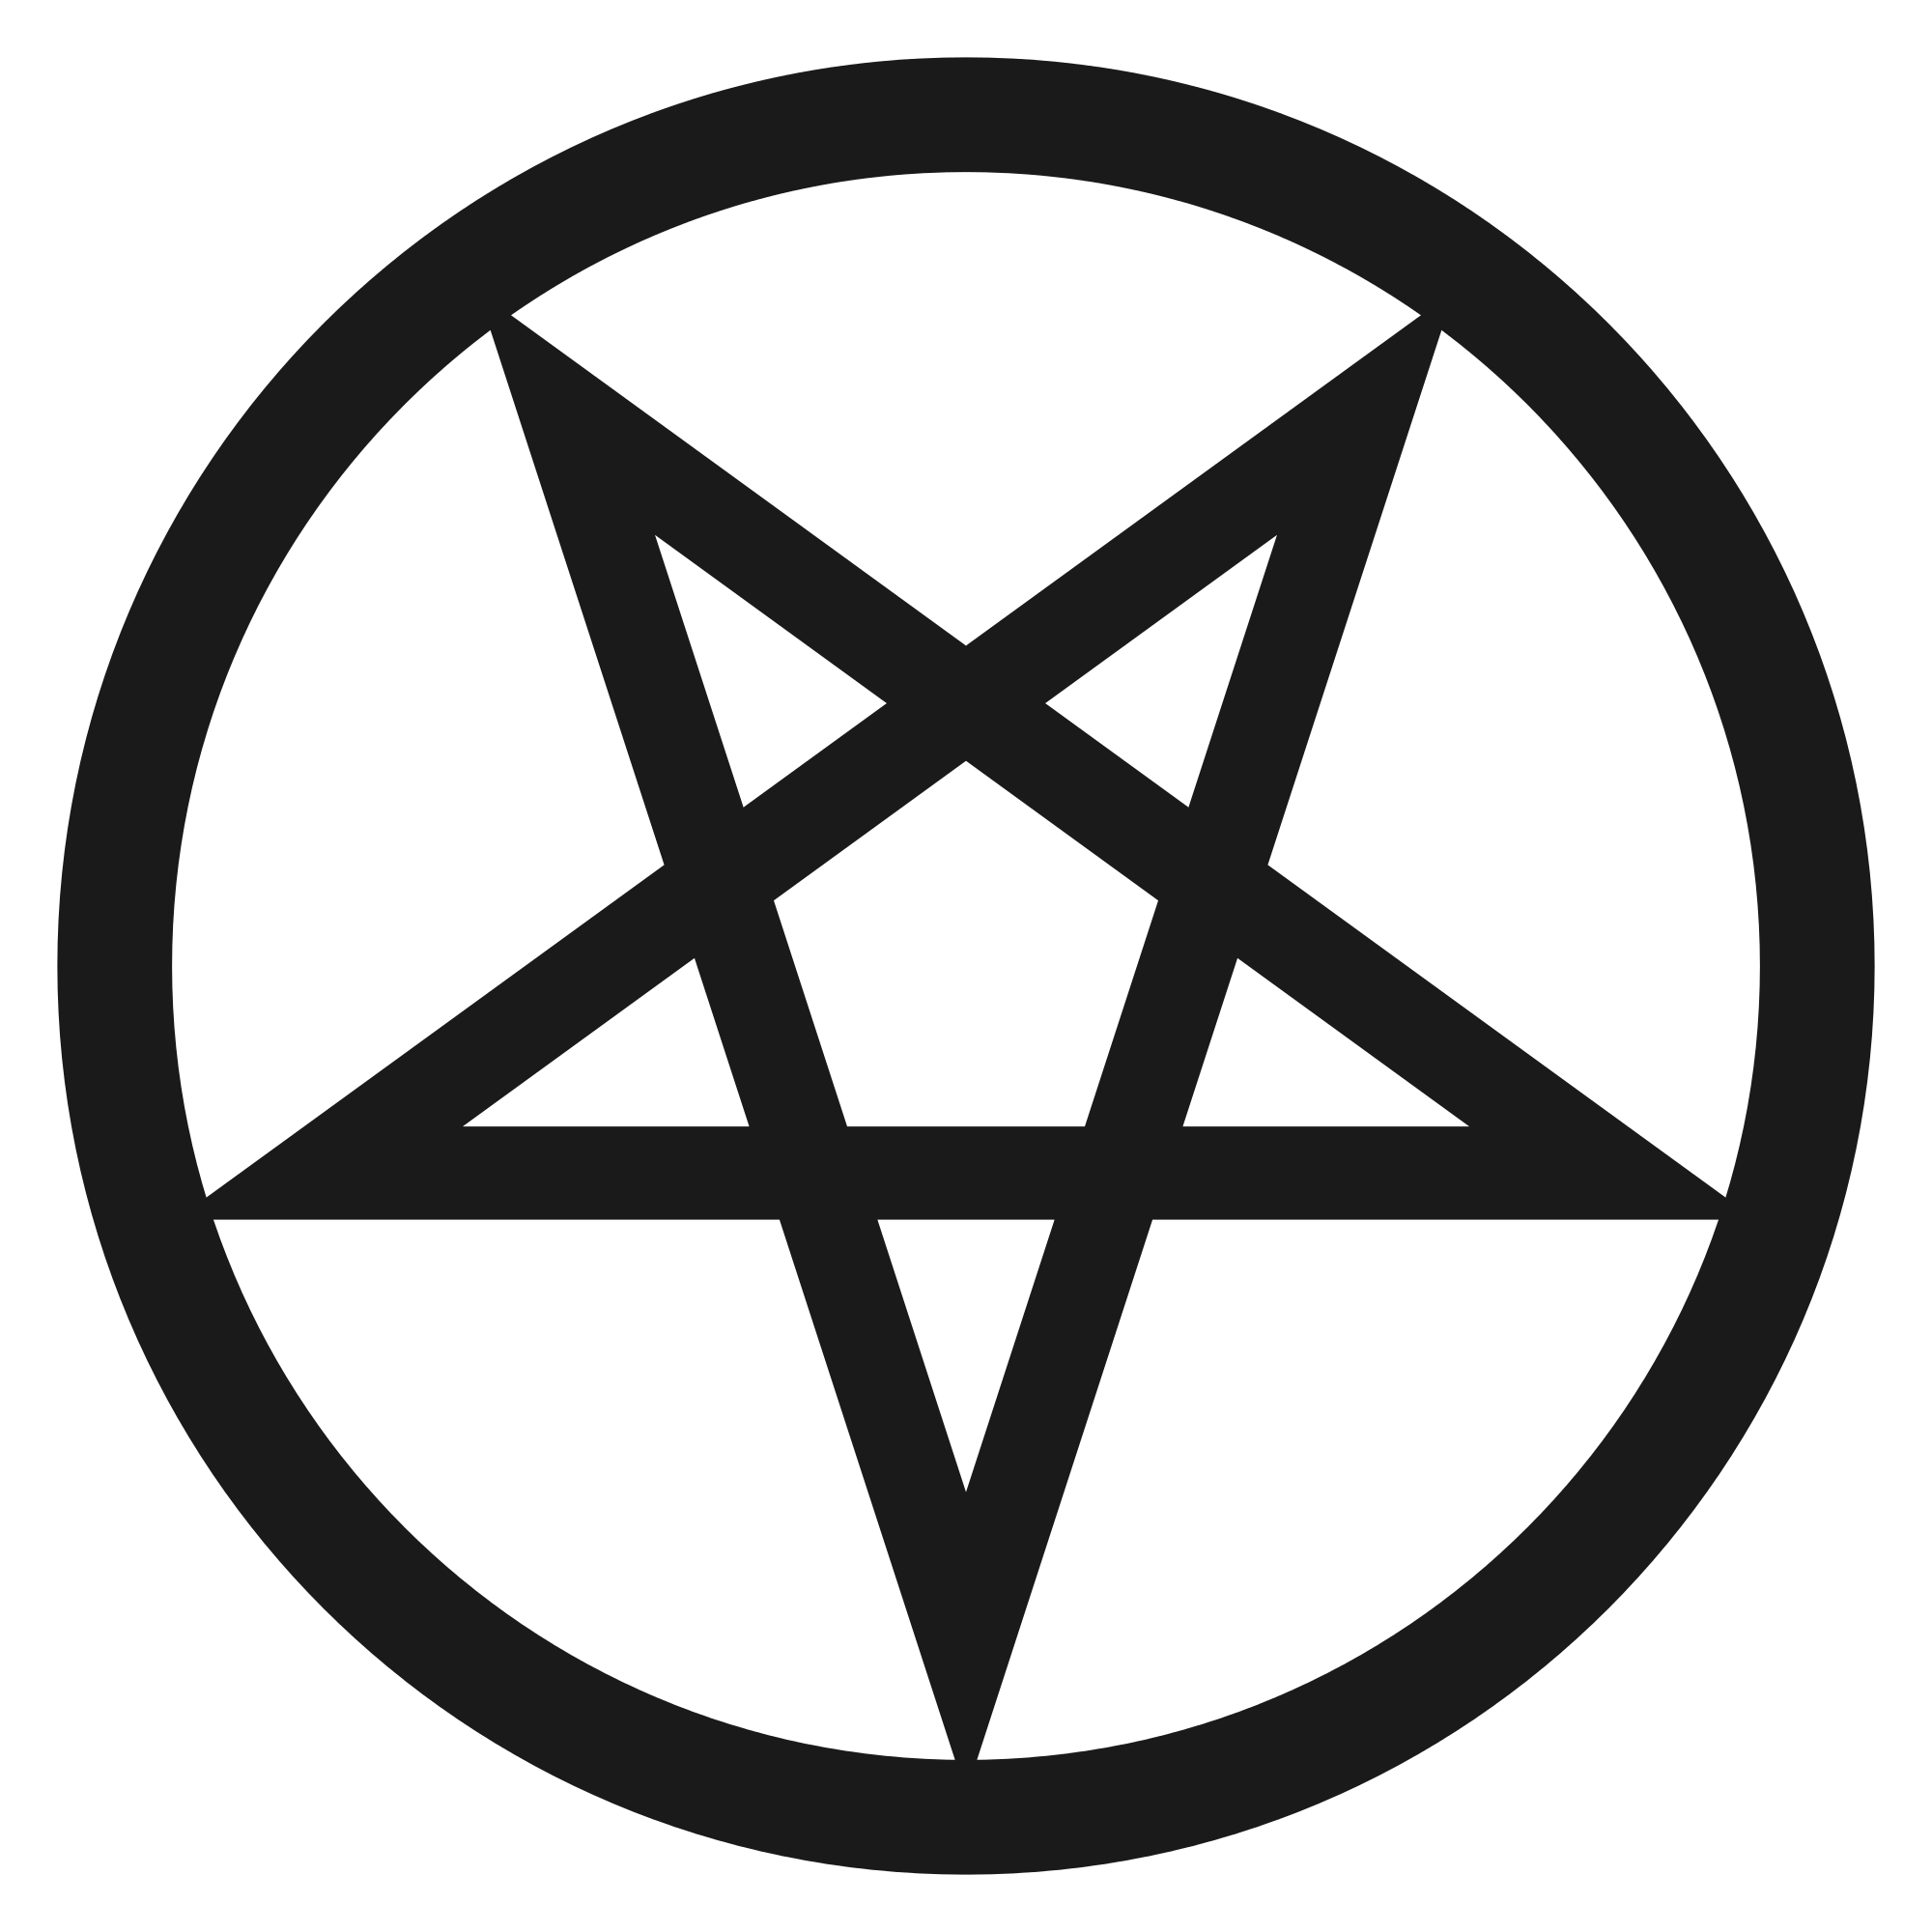 File inverted bold wikimedia. Pentacle vector svg picture free